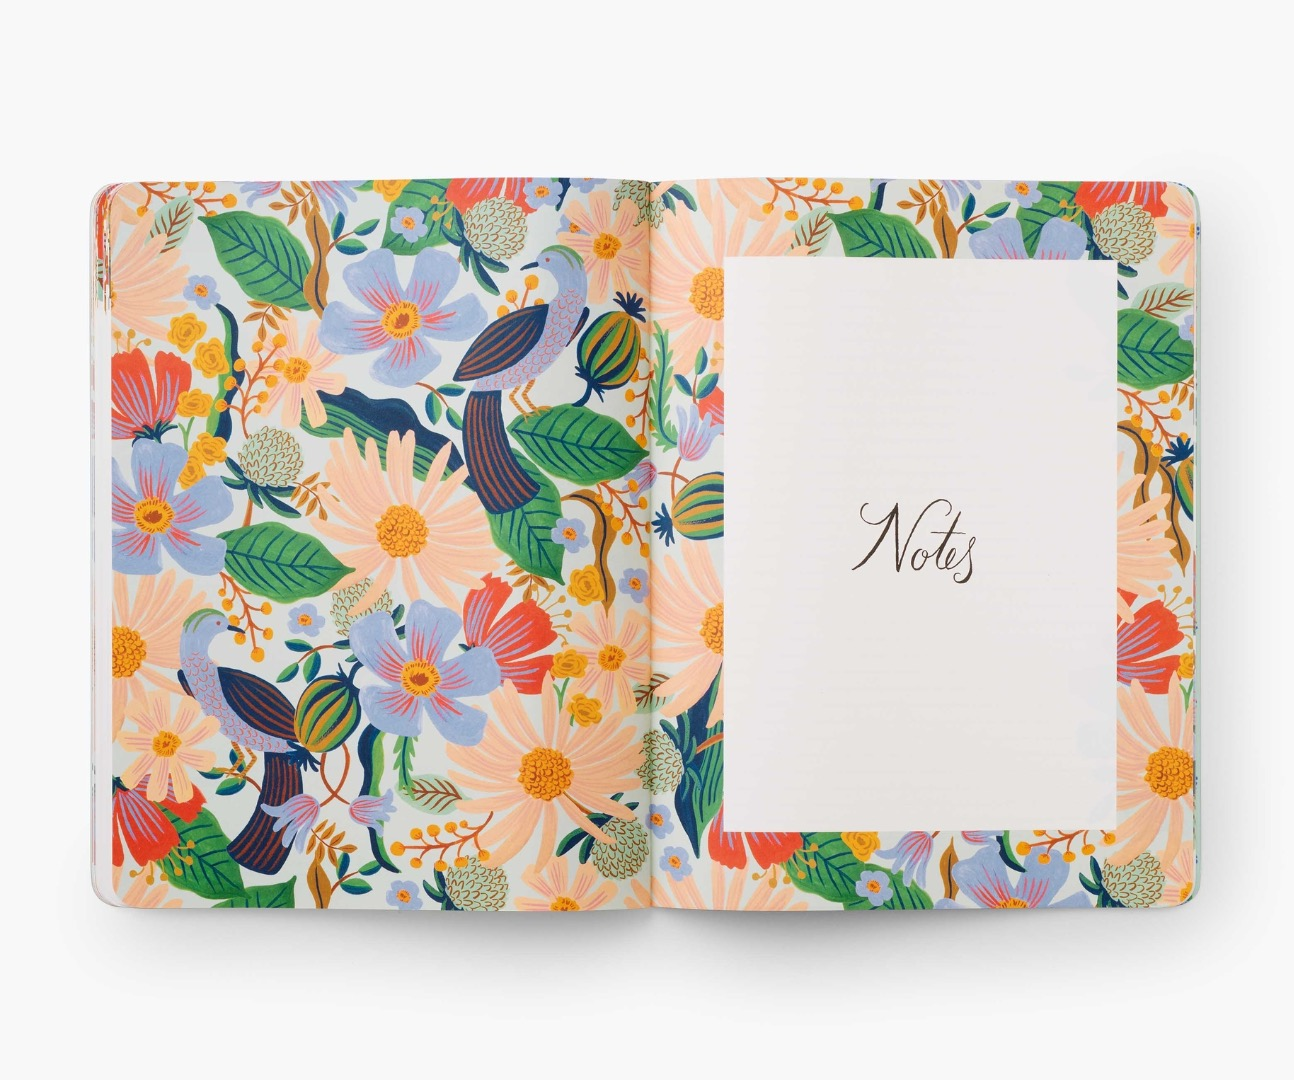 2022 Dovecote Appointment Notebook 5